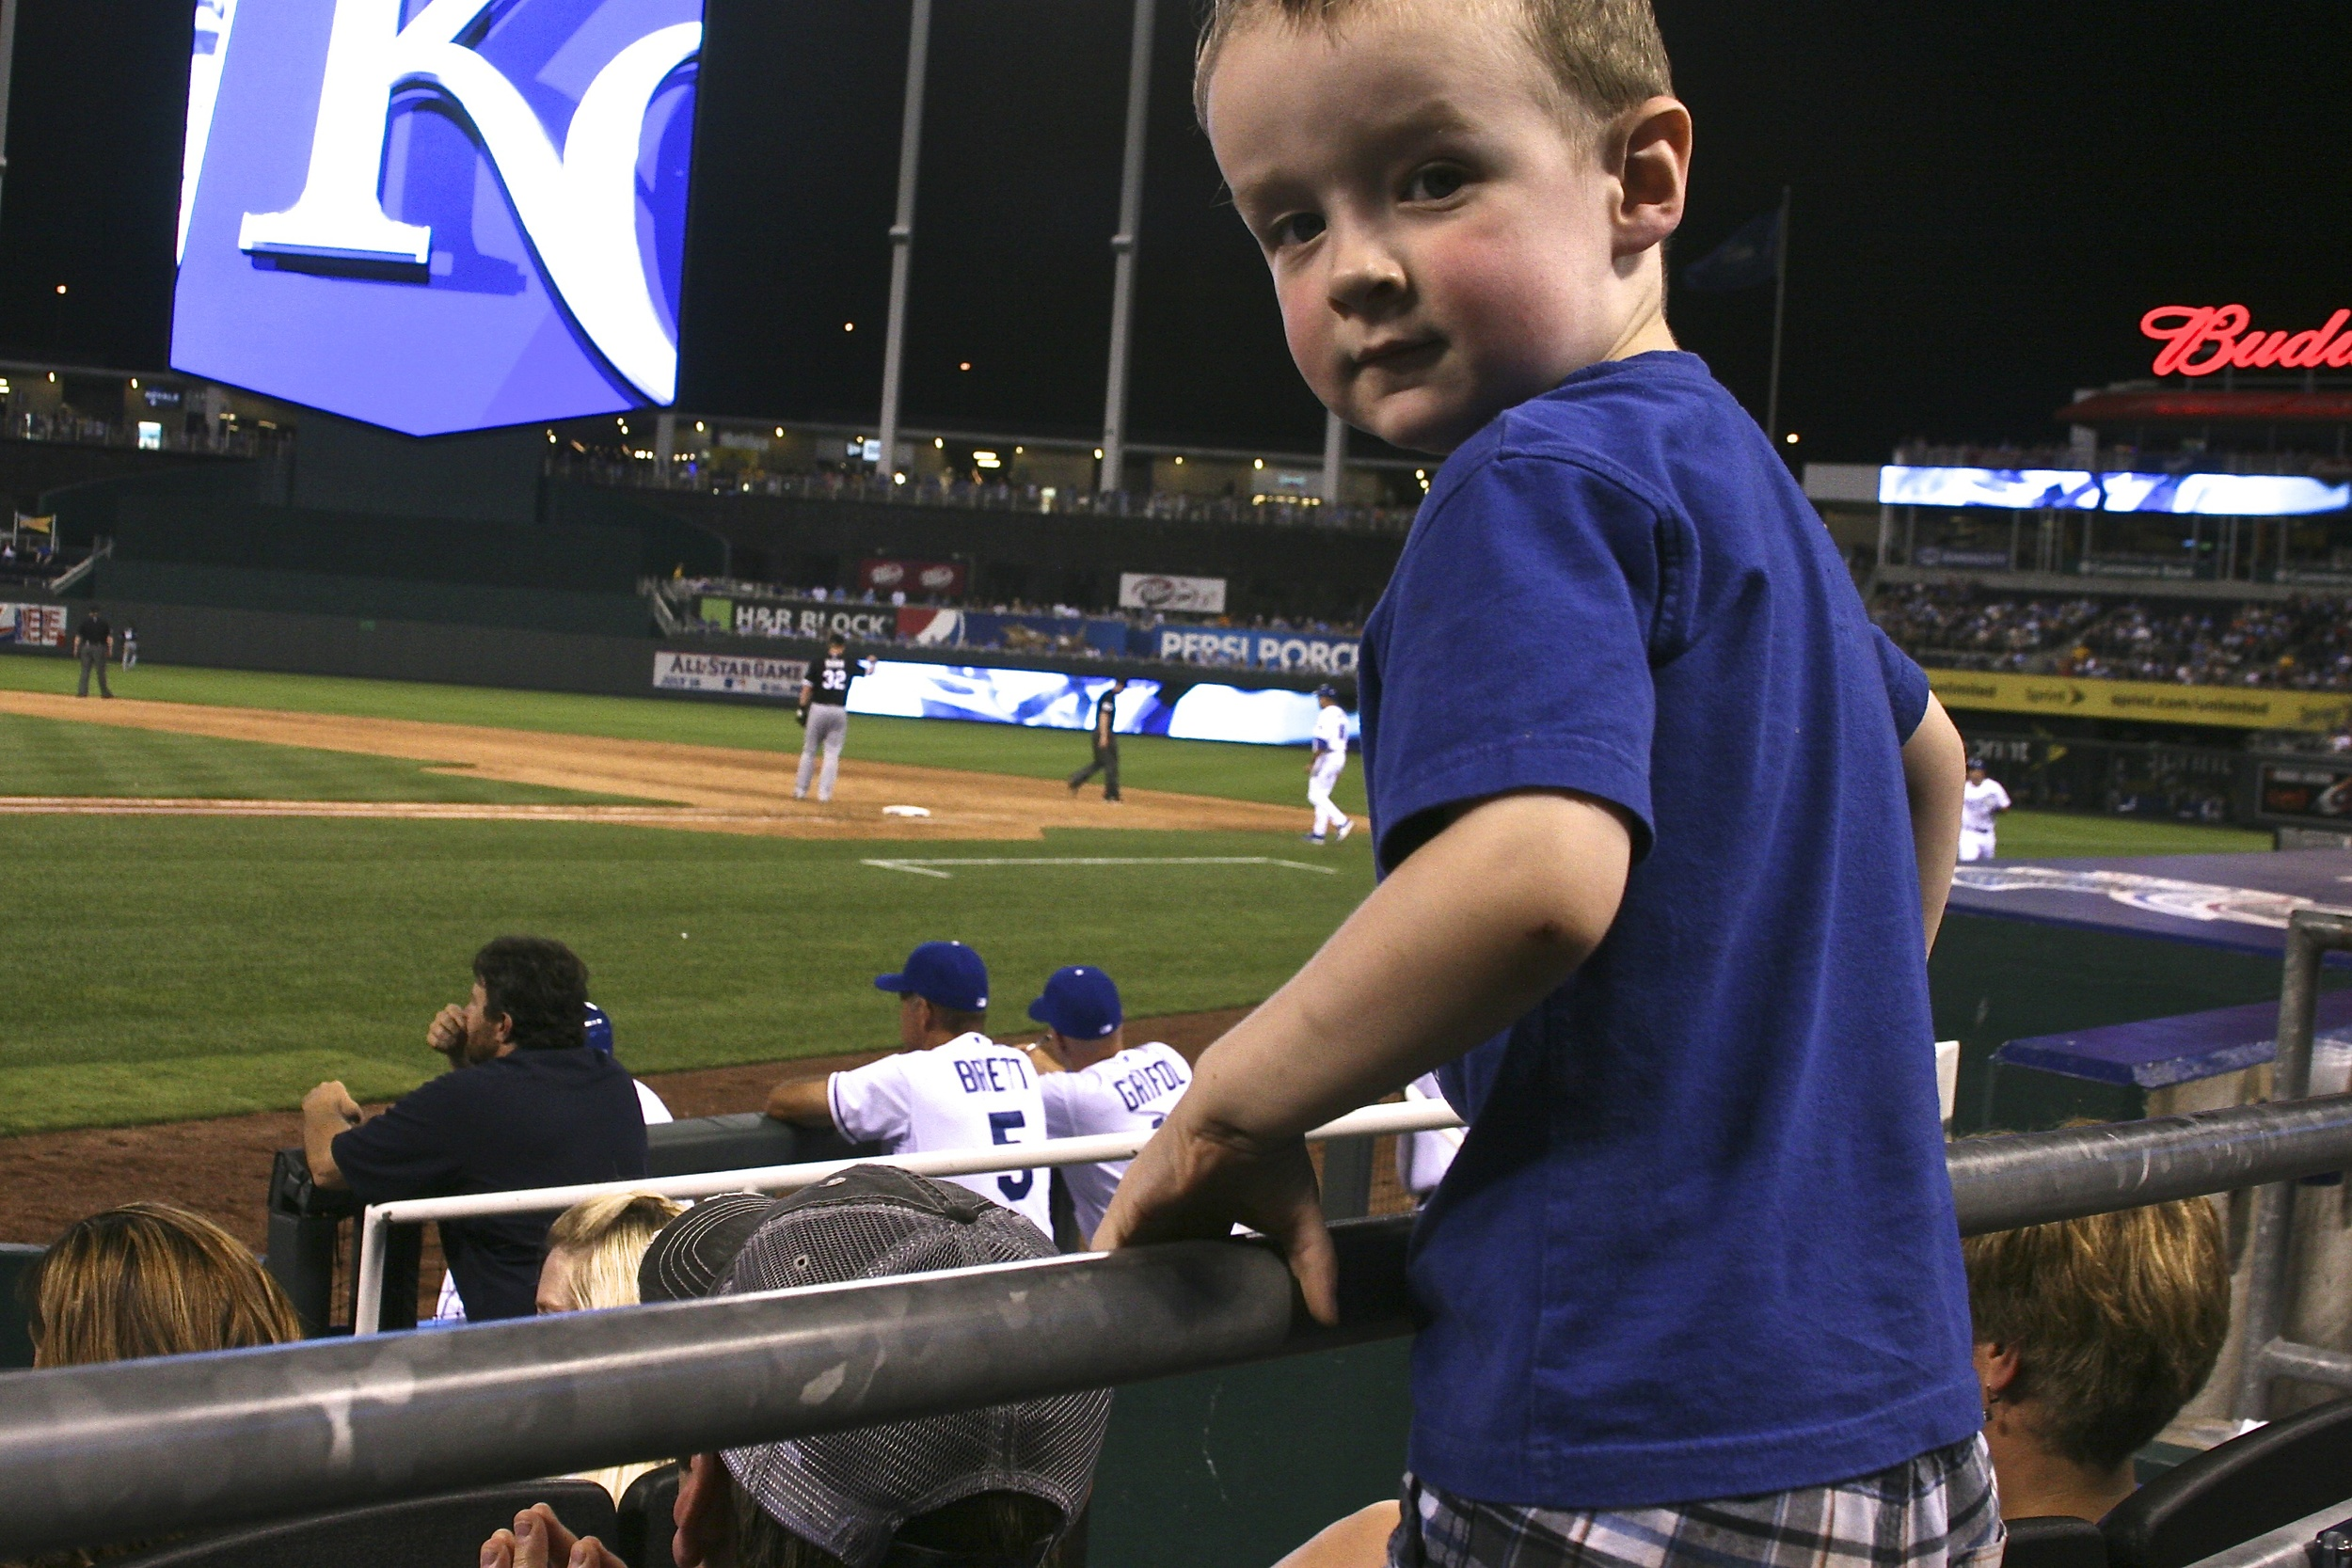 Young Royals fan